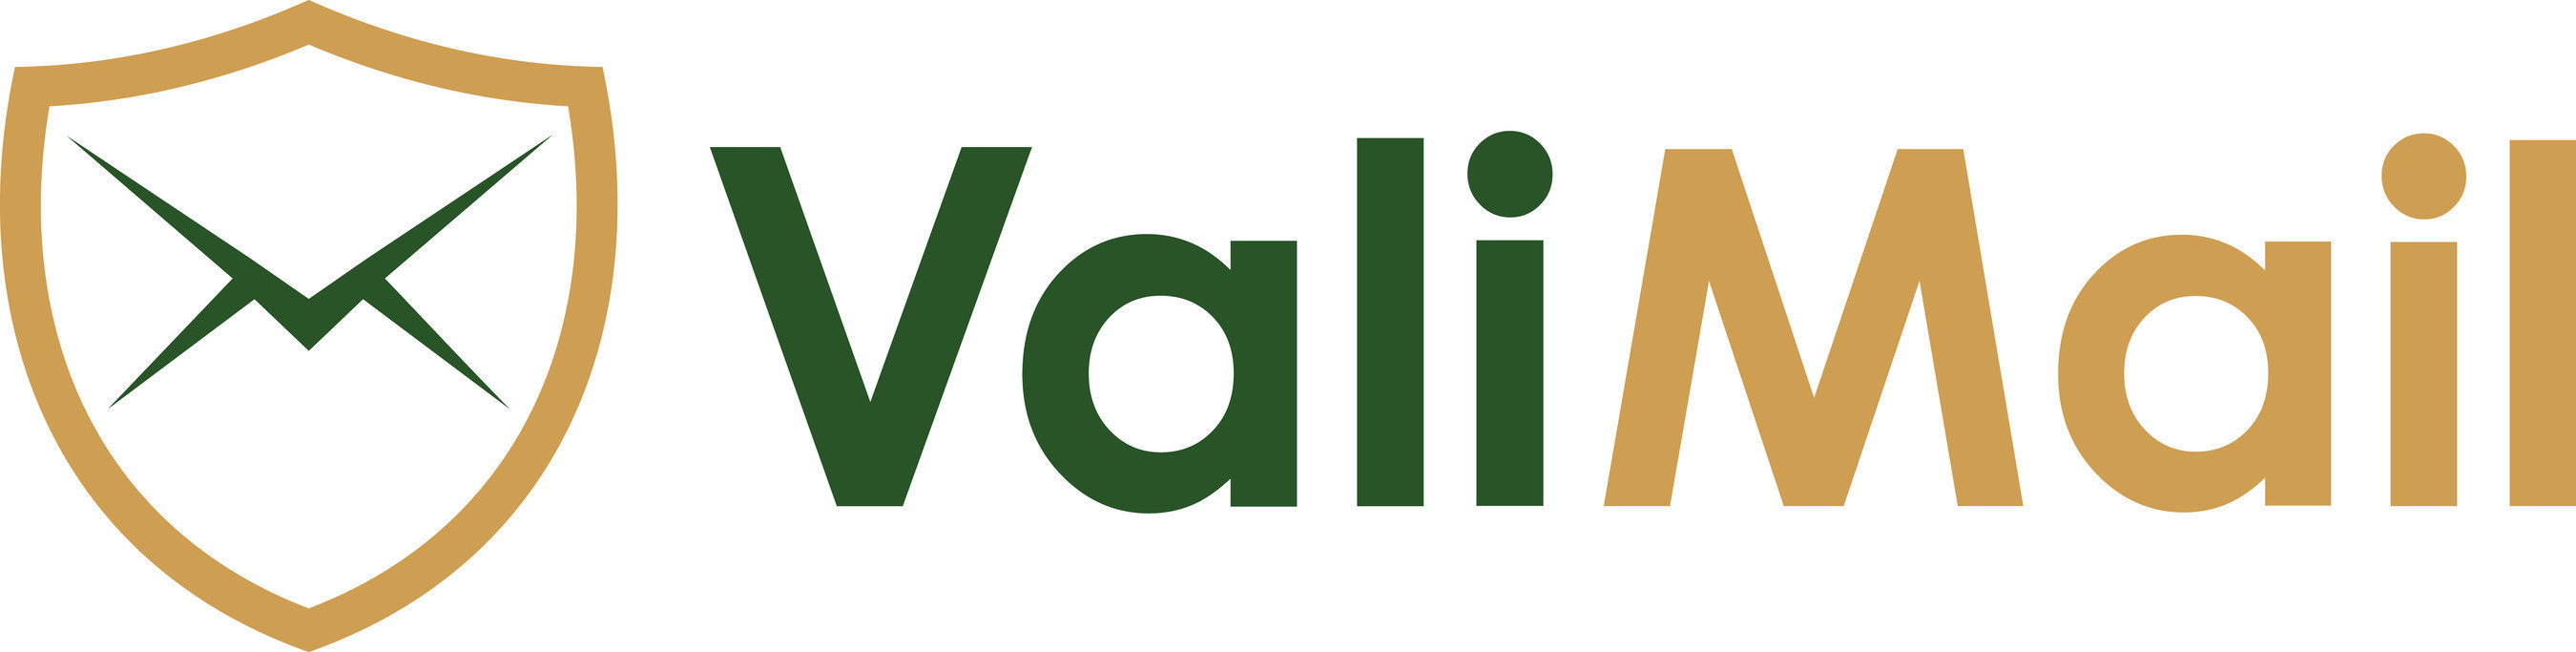 ValiMail Accelerates Authentication Of The World's Email Through $12 Million Series A Round Led By Shasta Ventures